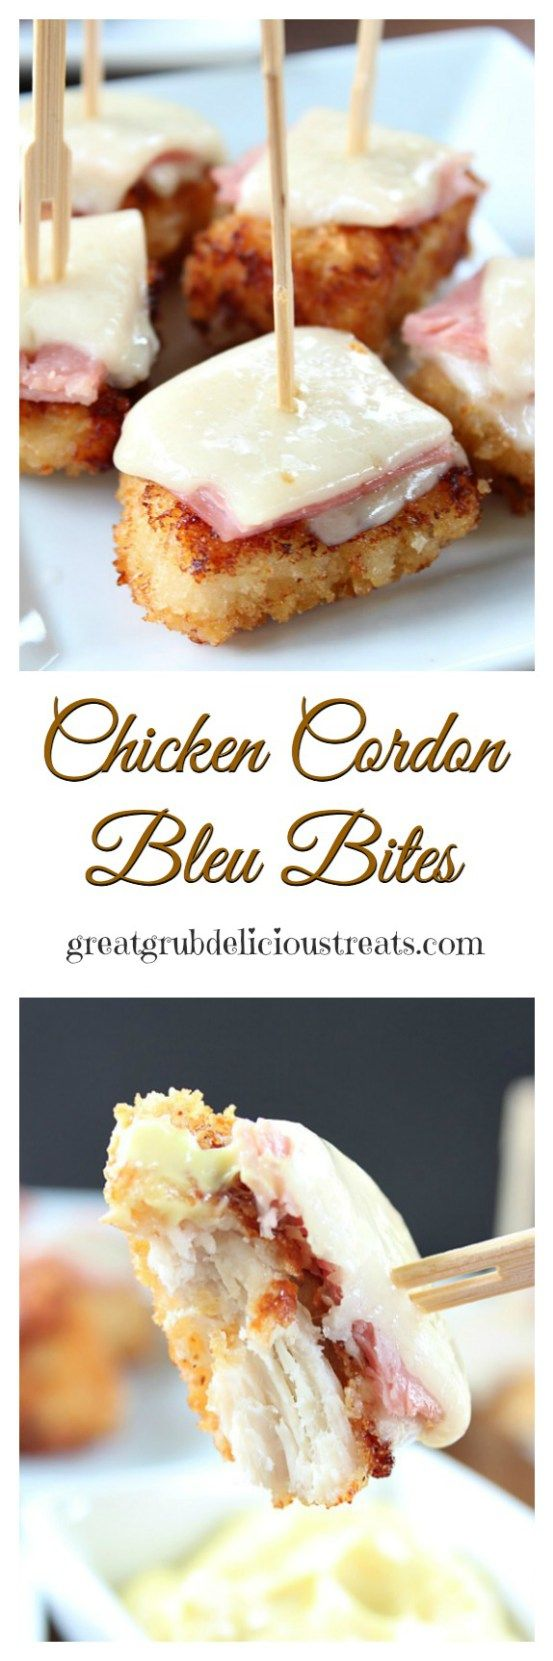 Chicken Cordon Bleu Bites. These are perfect for a party!